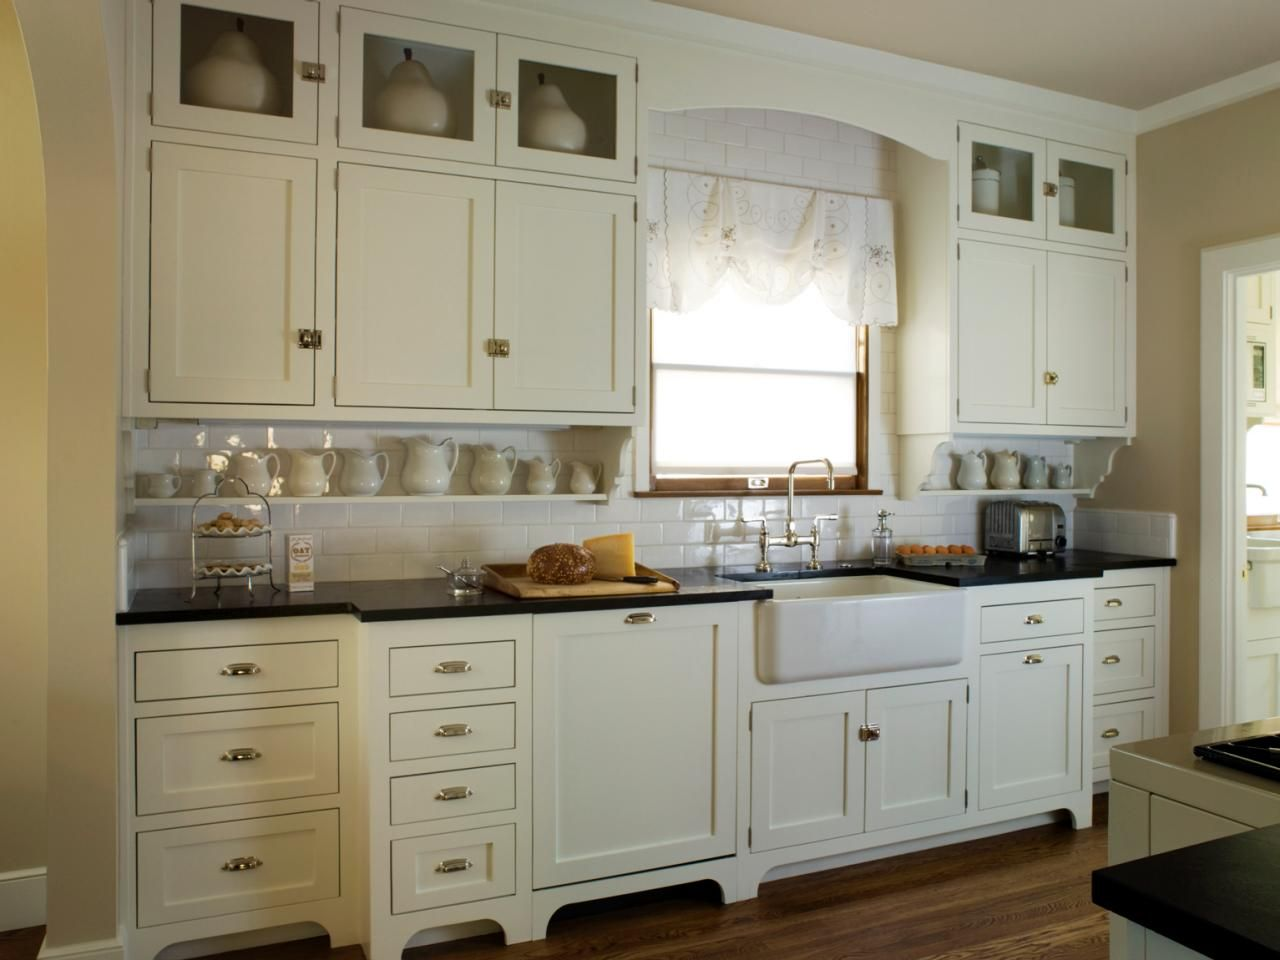 This quaint cottage kitchen features antique white Shaker